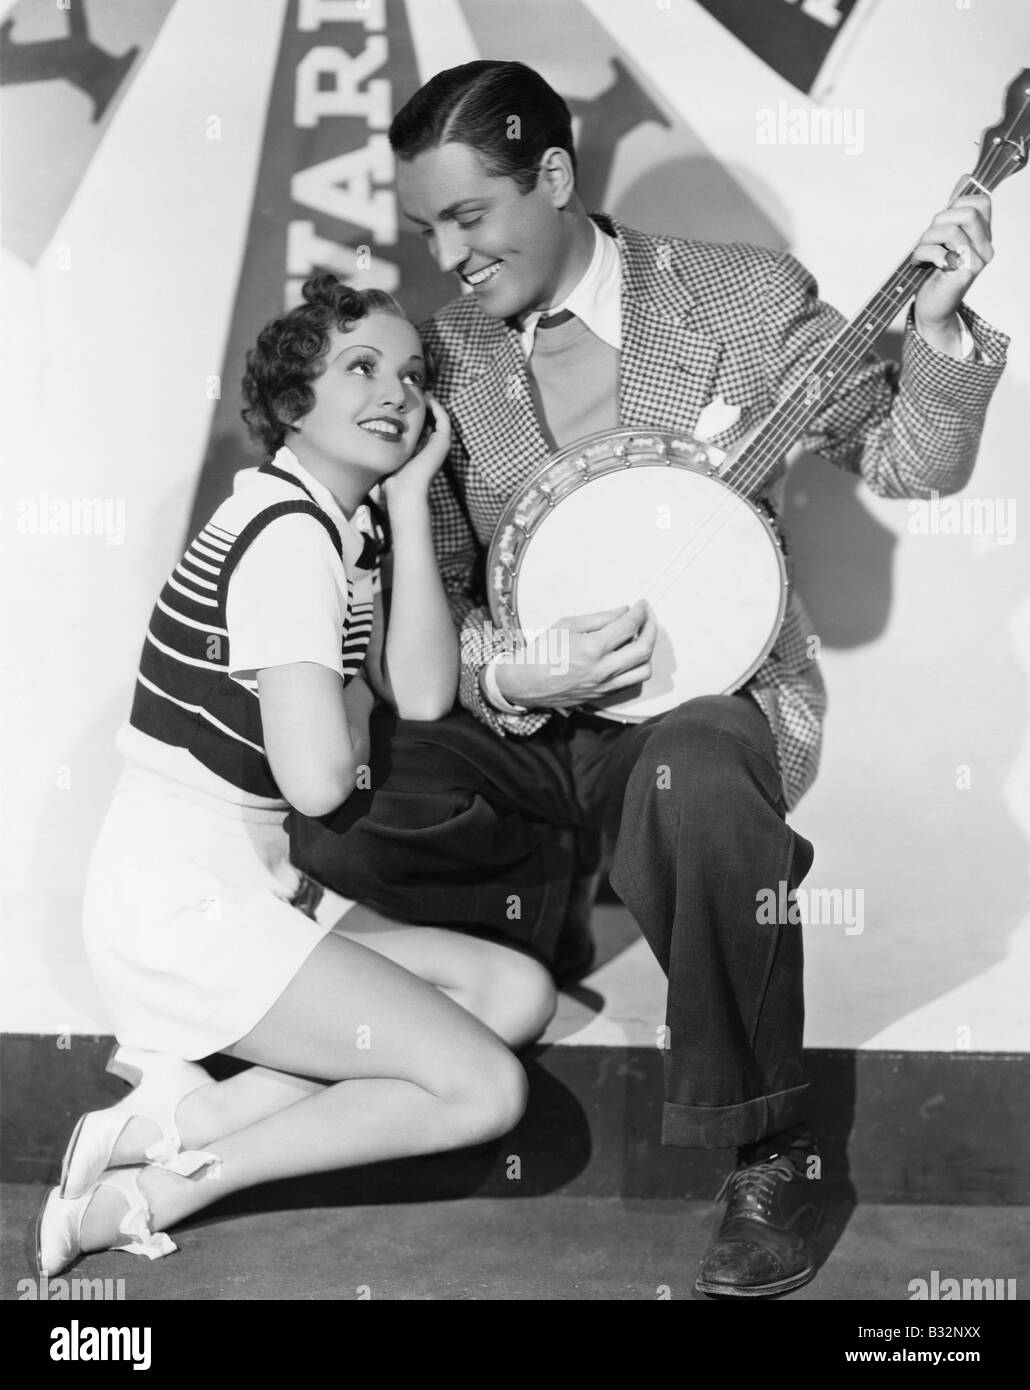 Man playing banjo for adoring woman - Stock Image